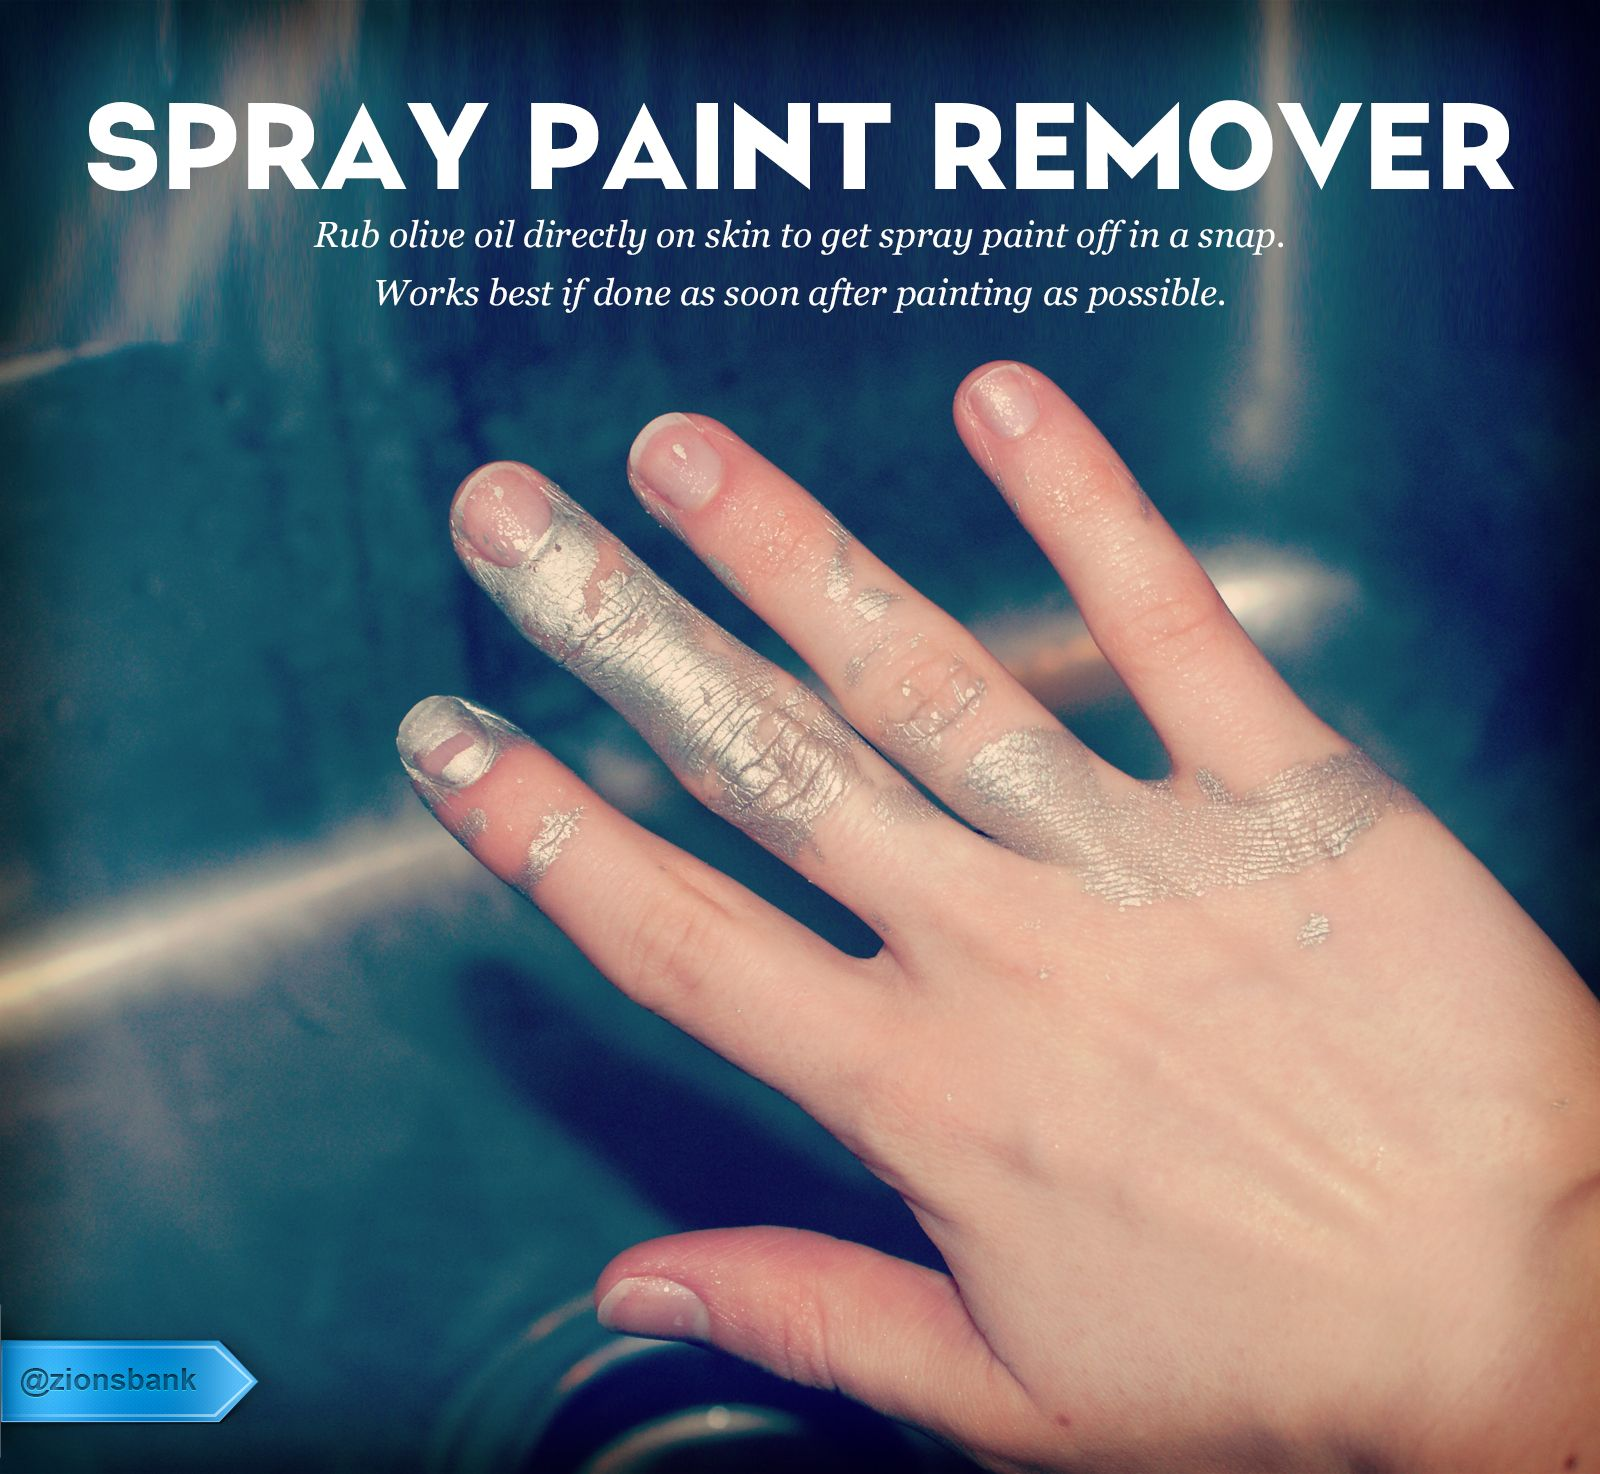 Spray Paint Crafting Can Be Messy Don T Let The Proof Stay On Your Skin For Days Afterward Rub Olive Oi Spray Paint Mirror Spray Paint Remover Paint Remover